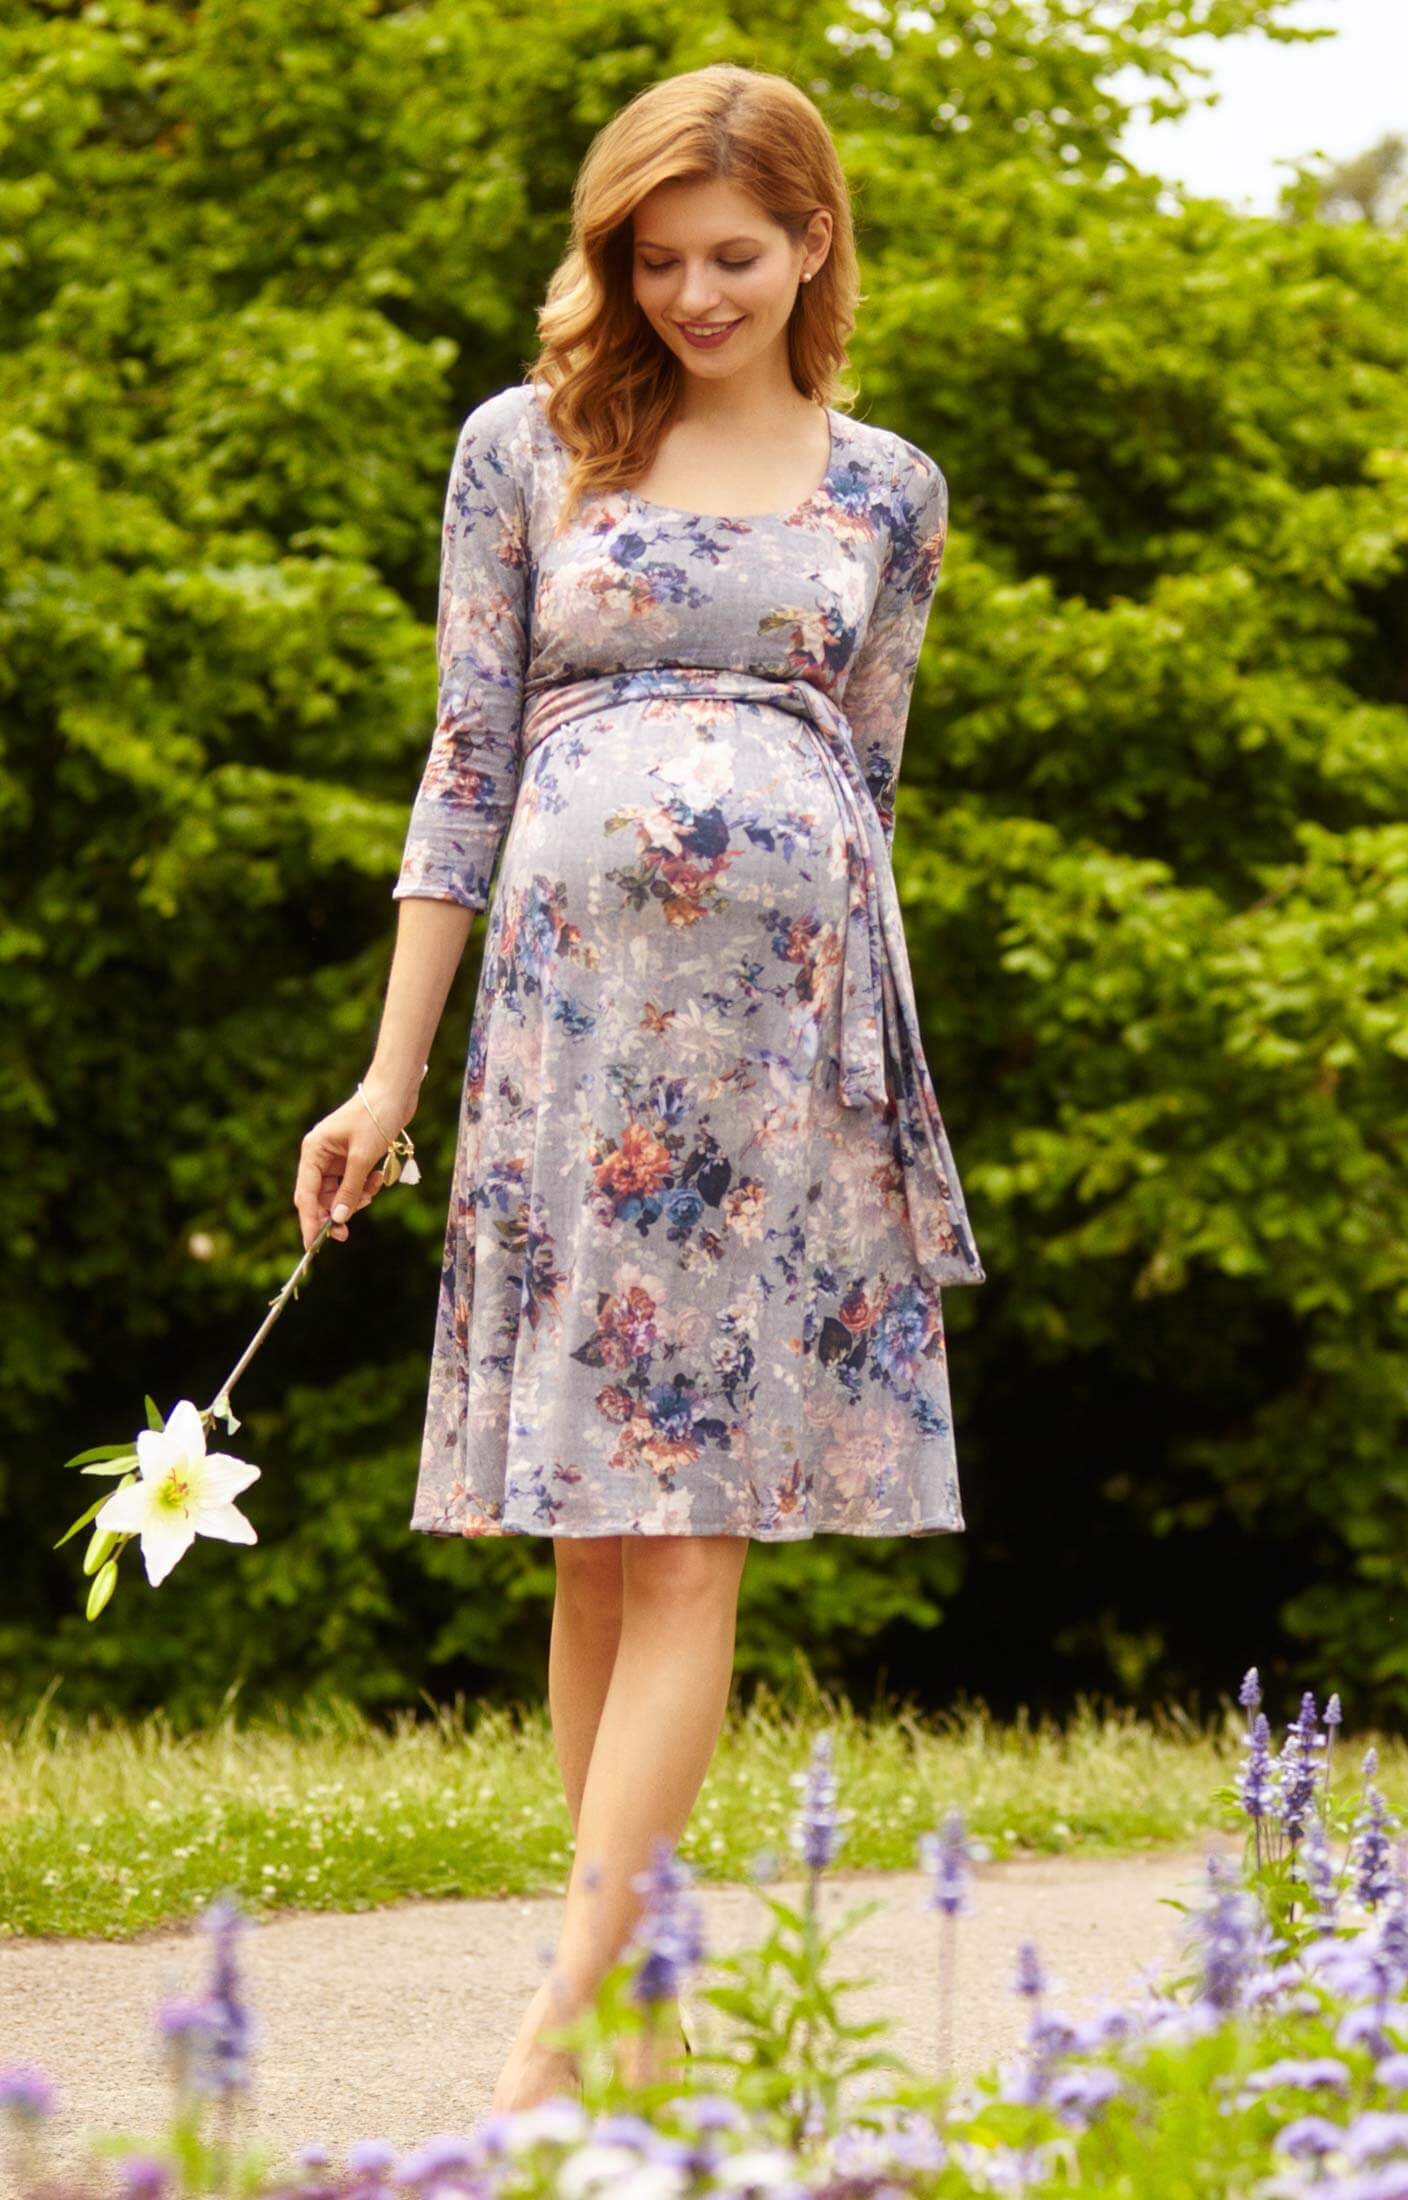 Find discount maternity dresses online at Destination Maternity. Featuring maternity dresses on sale in a variety of styles! Destination Maternity.